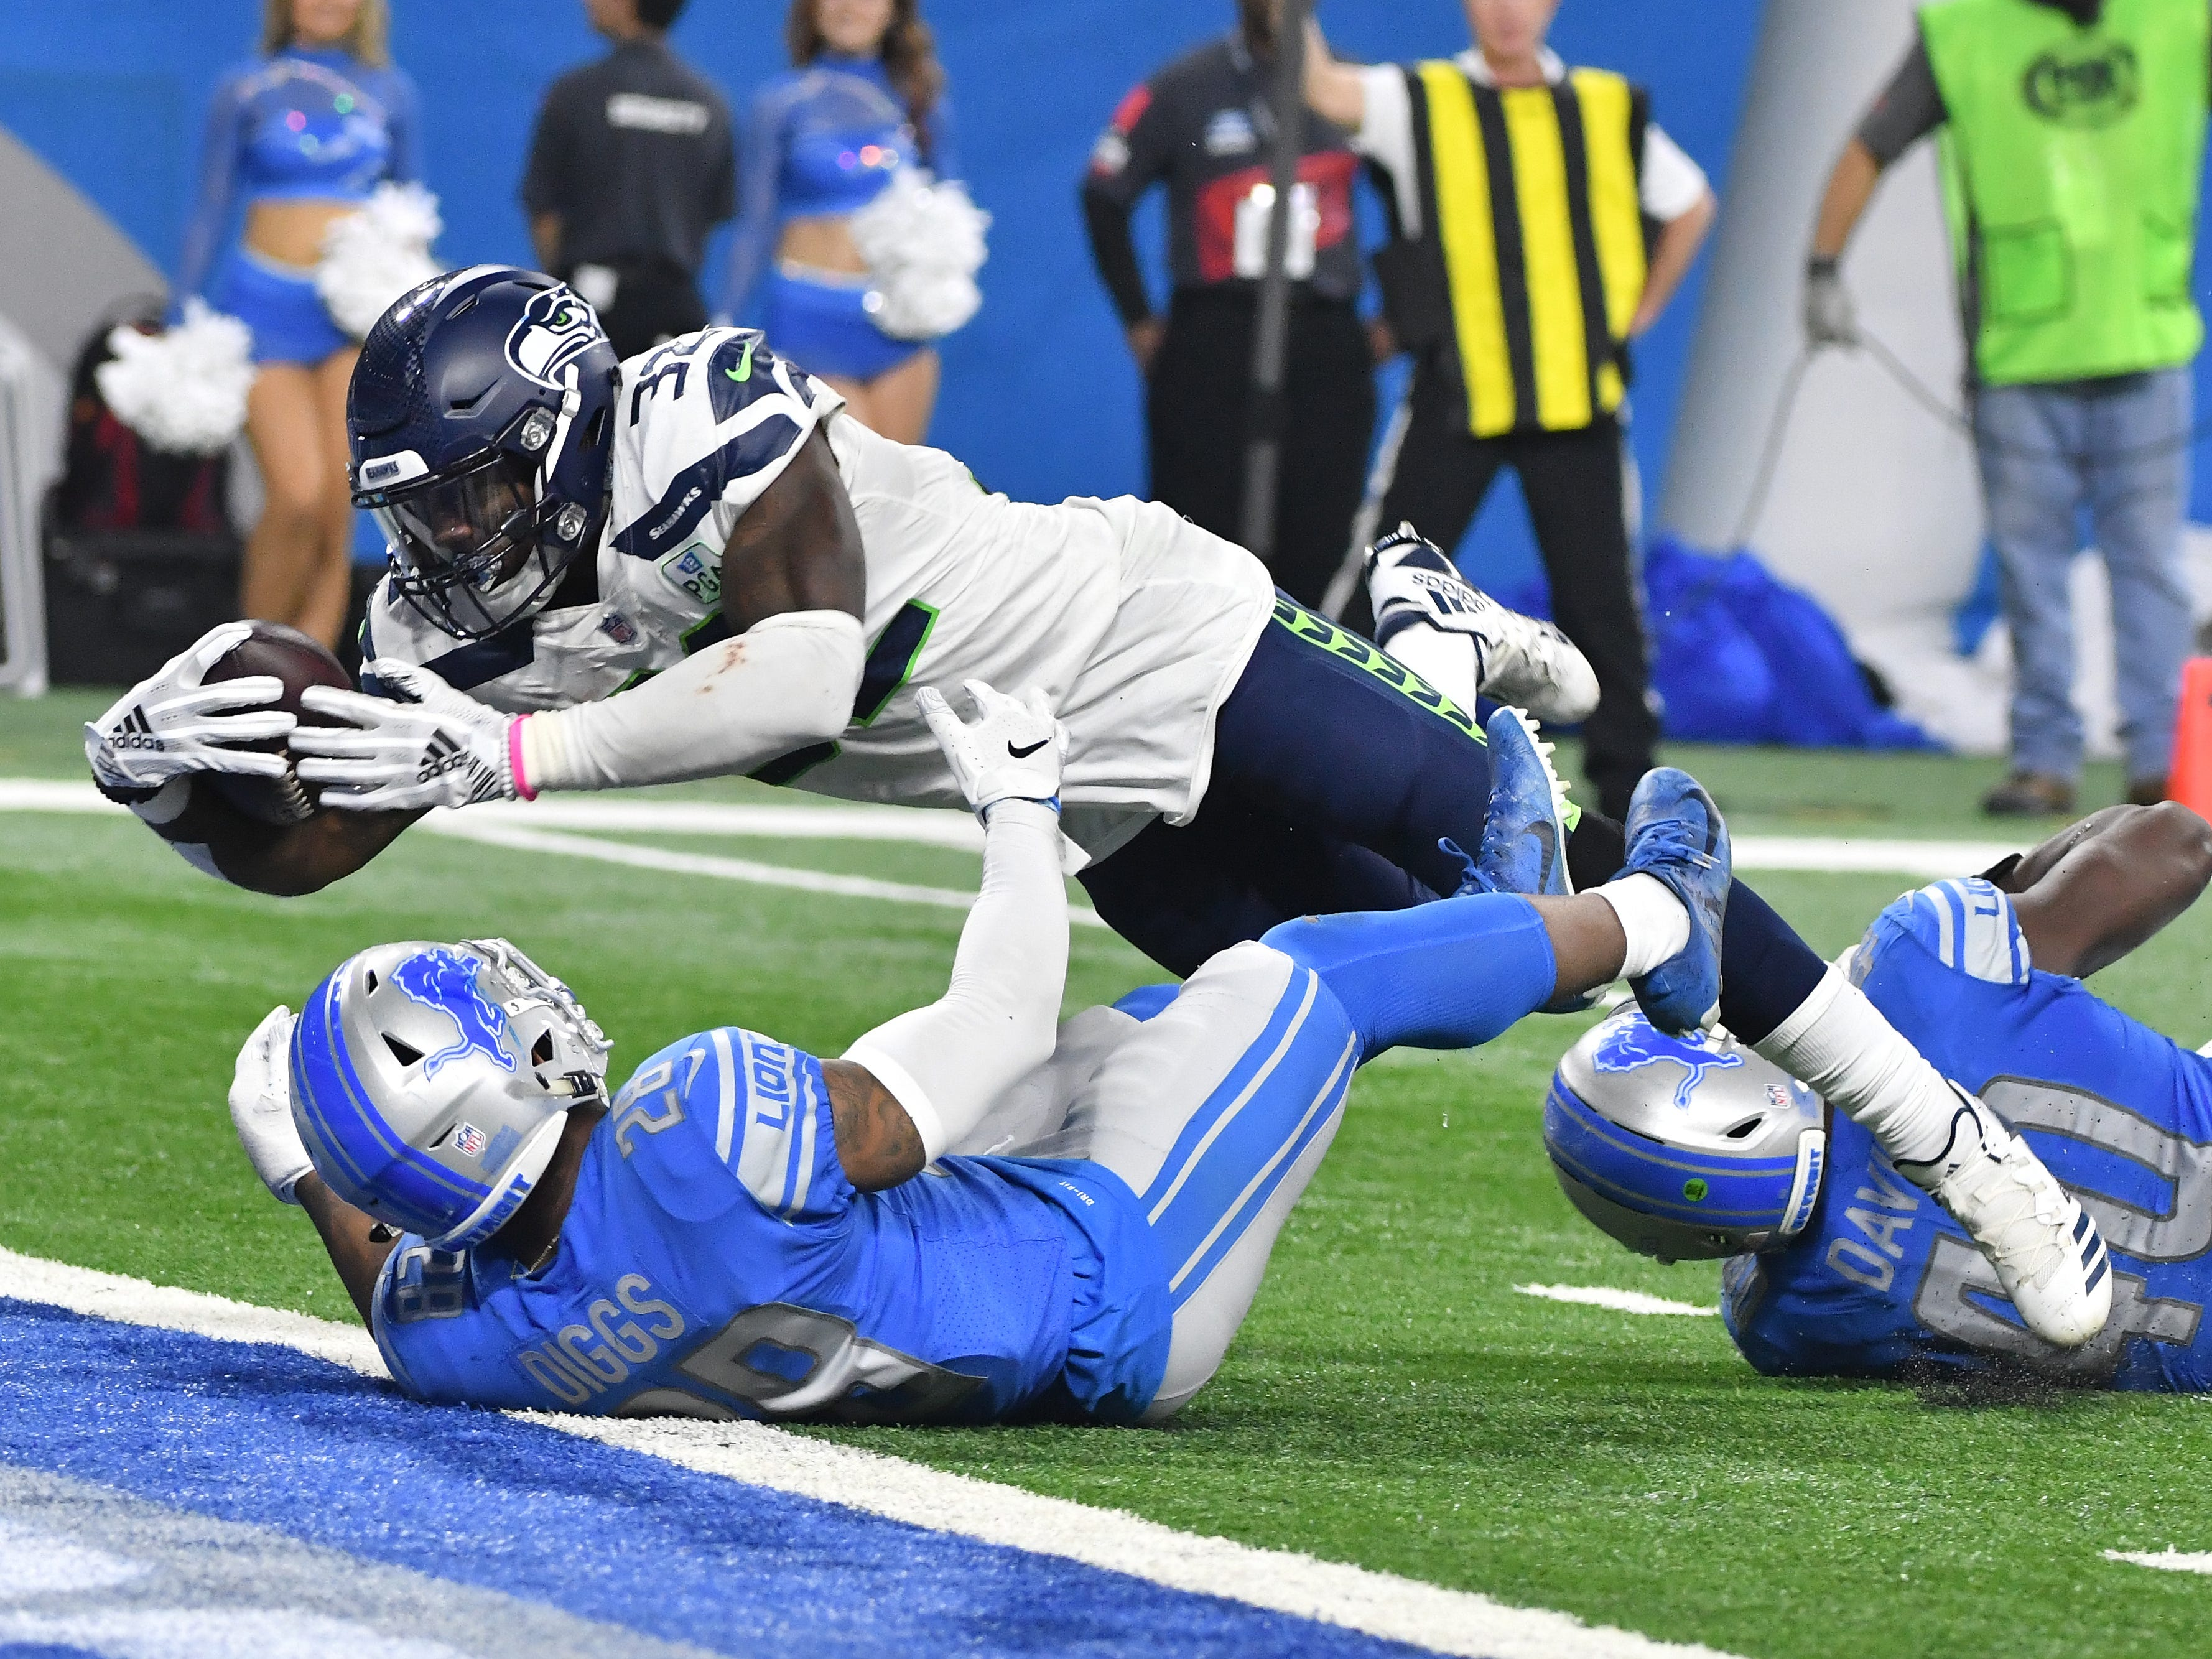 Seattle running back Chris Carson drives through and over Lions defense of Quandre Diggs and Jarrad Davis into the end zone for a touchdown in the fourth quarter.